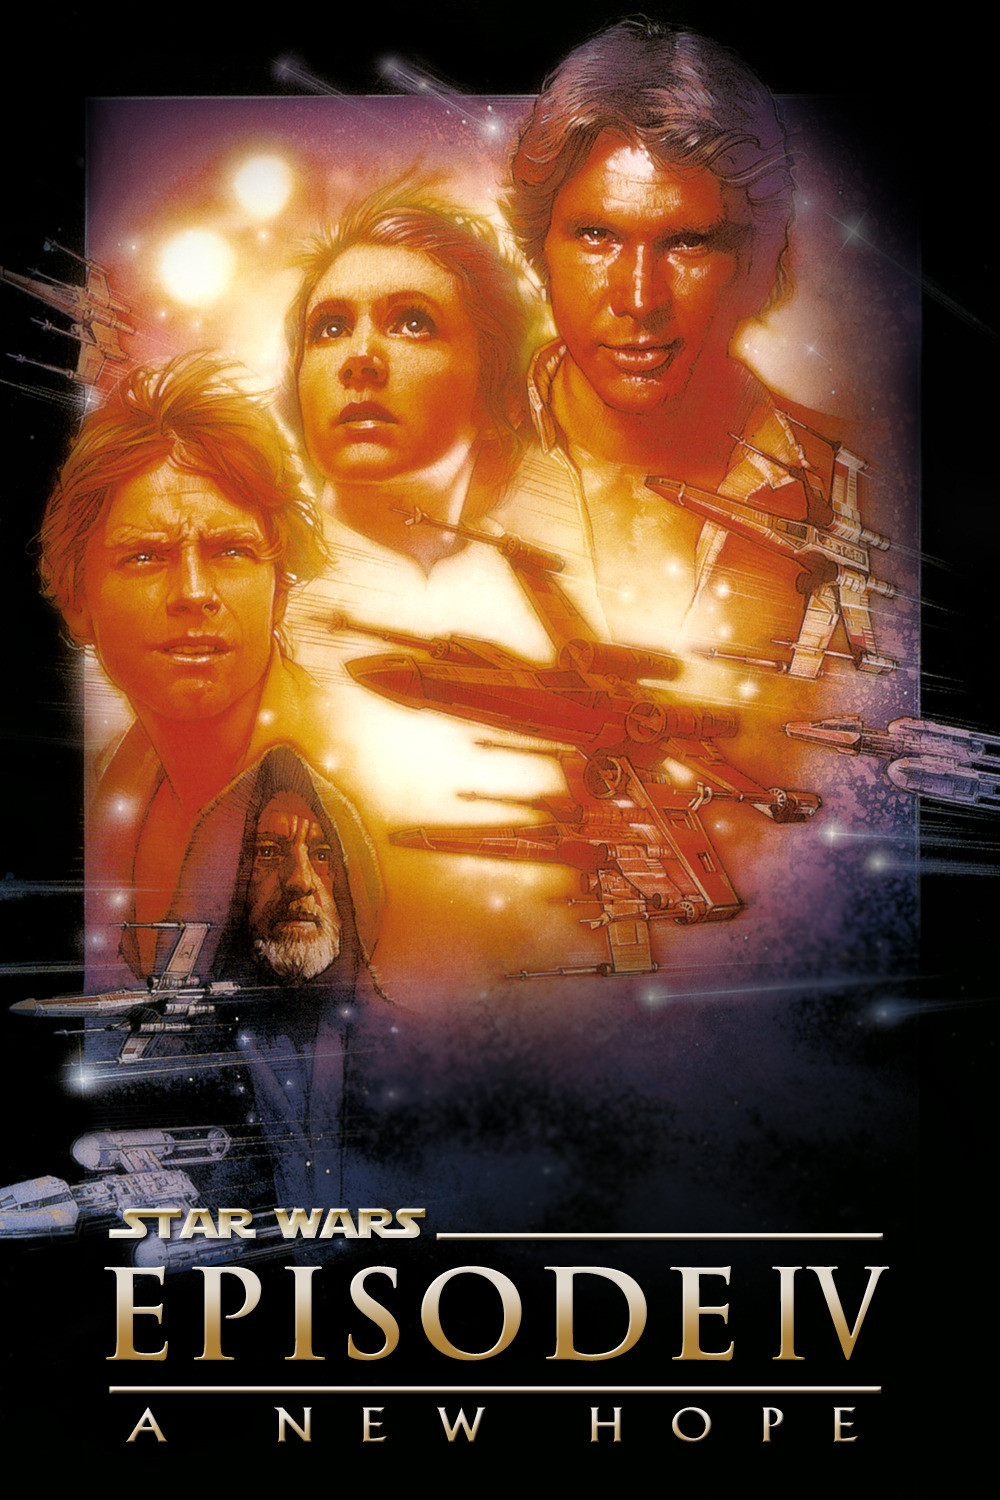 Star Wars Day Revenge Of The Sixth Star Wars Episode Iv A New Hope 1977 Goat Film Reviews